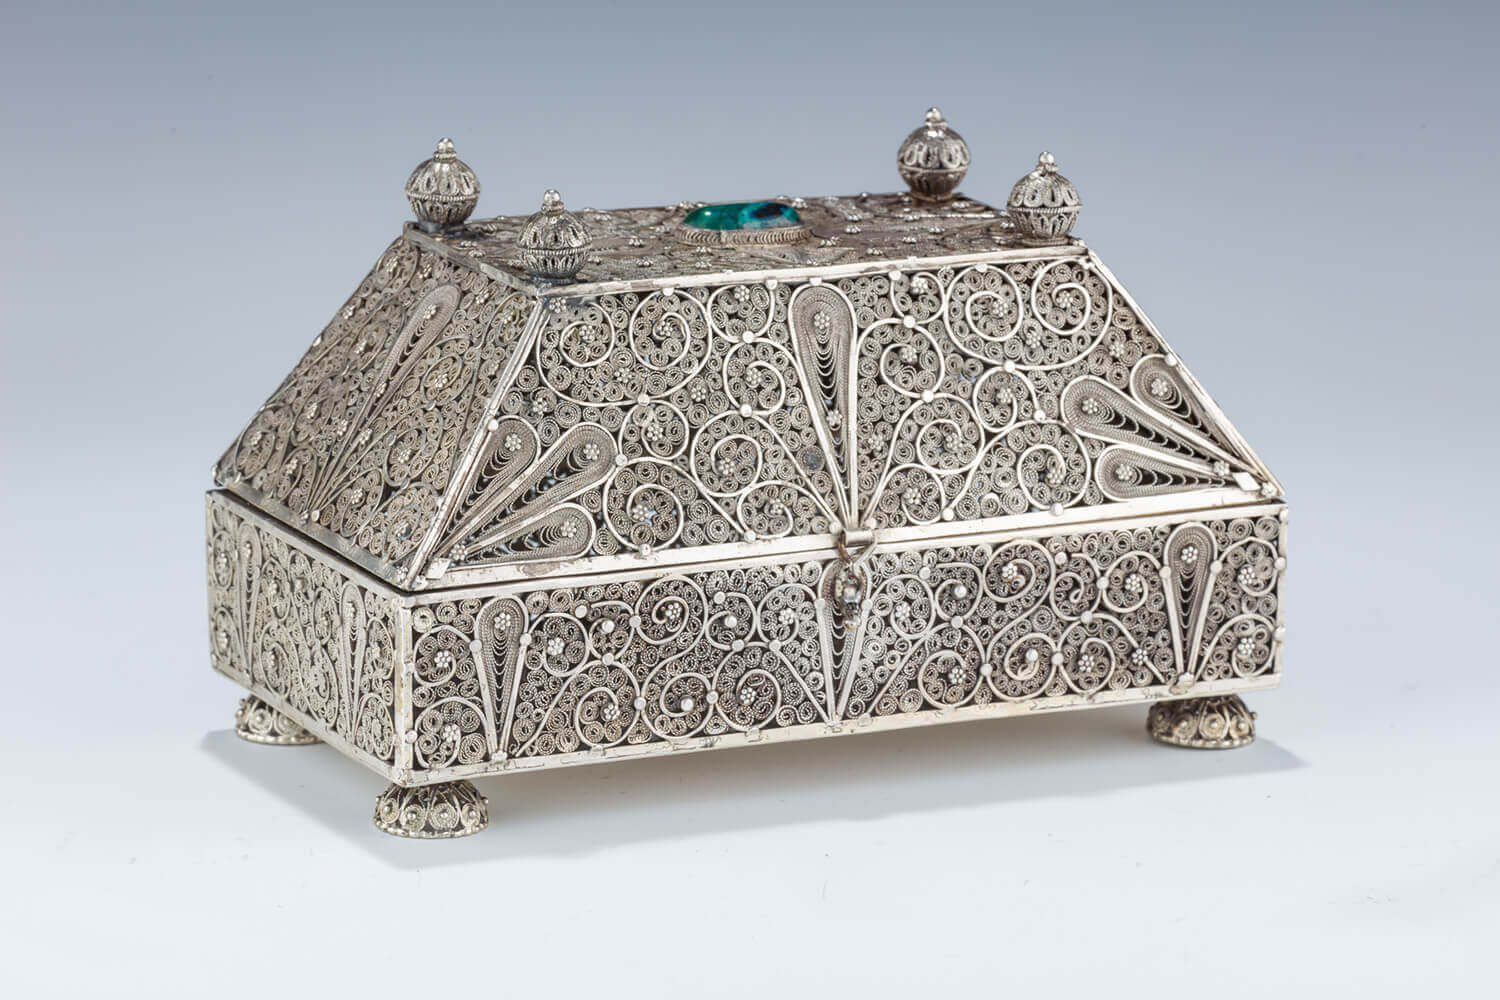 156. AN EARLY ISRAEL SILVER FILIGREE ETROG BOX